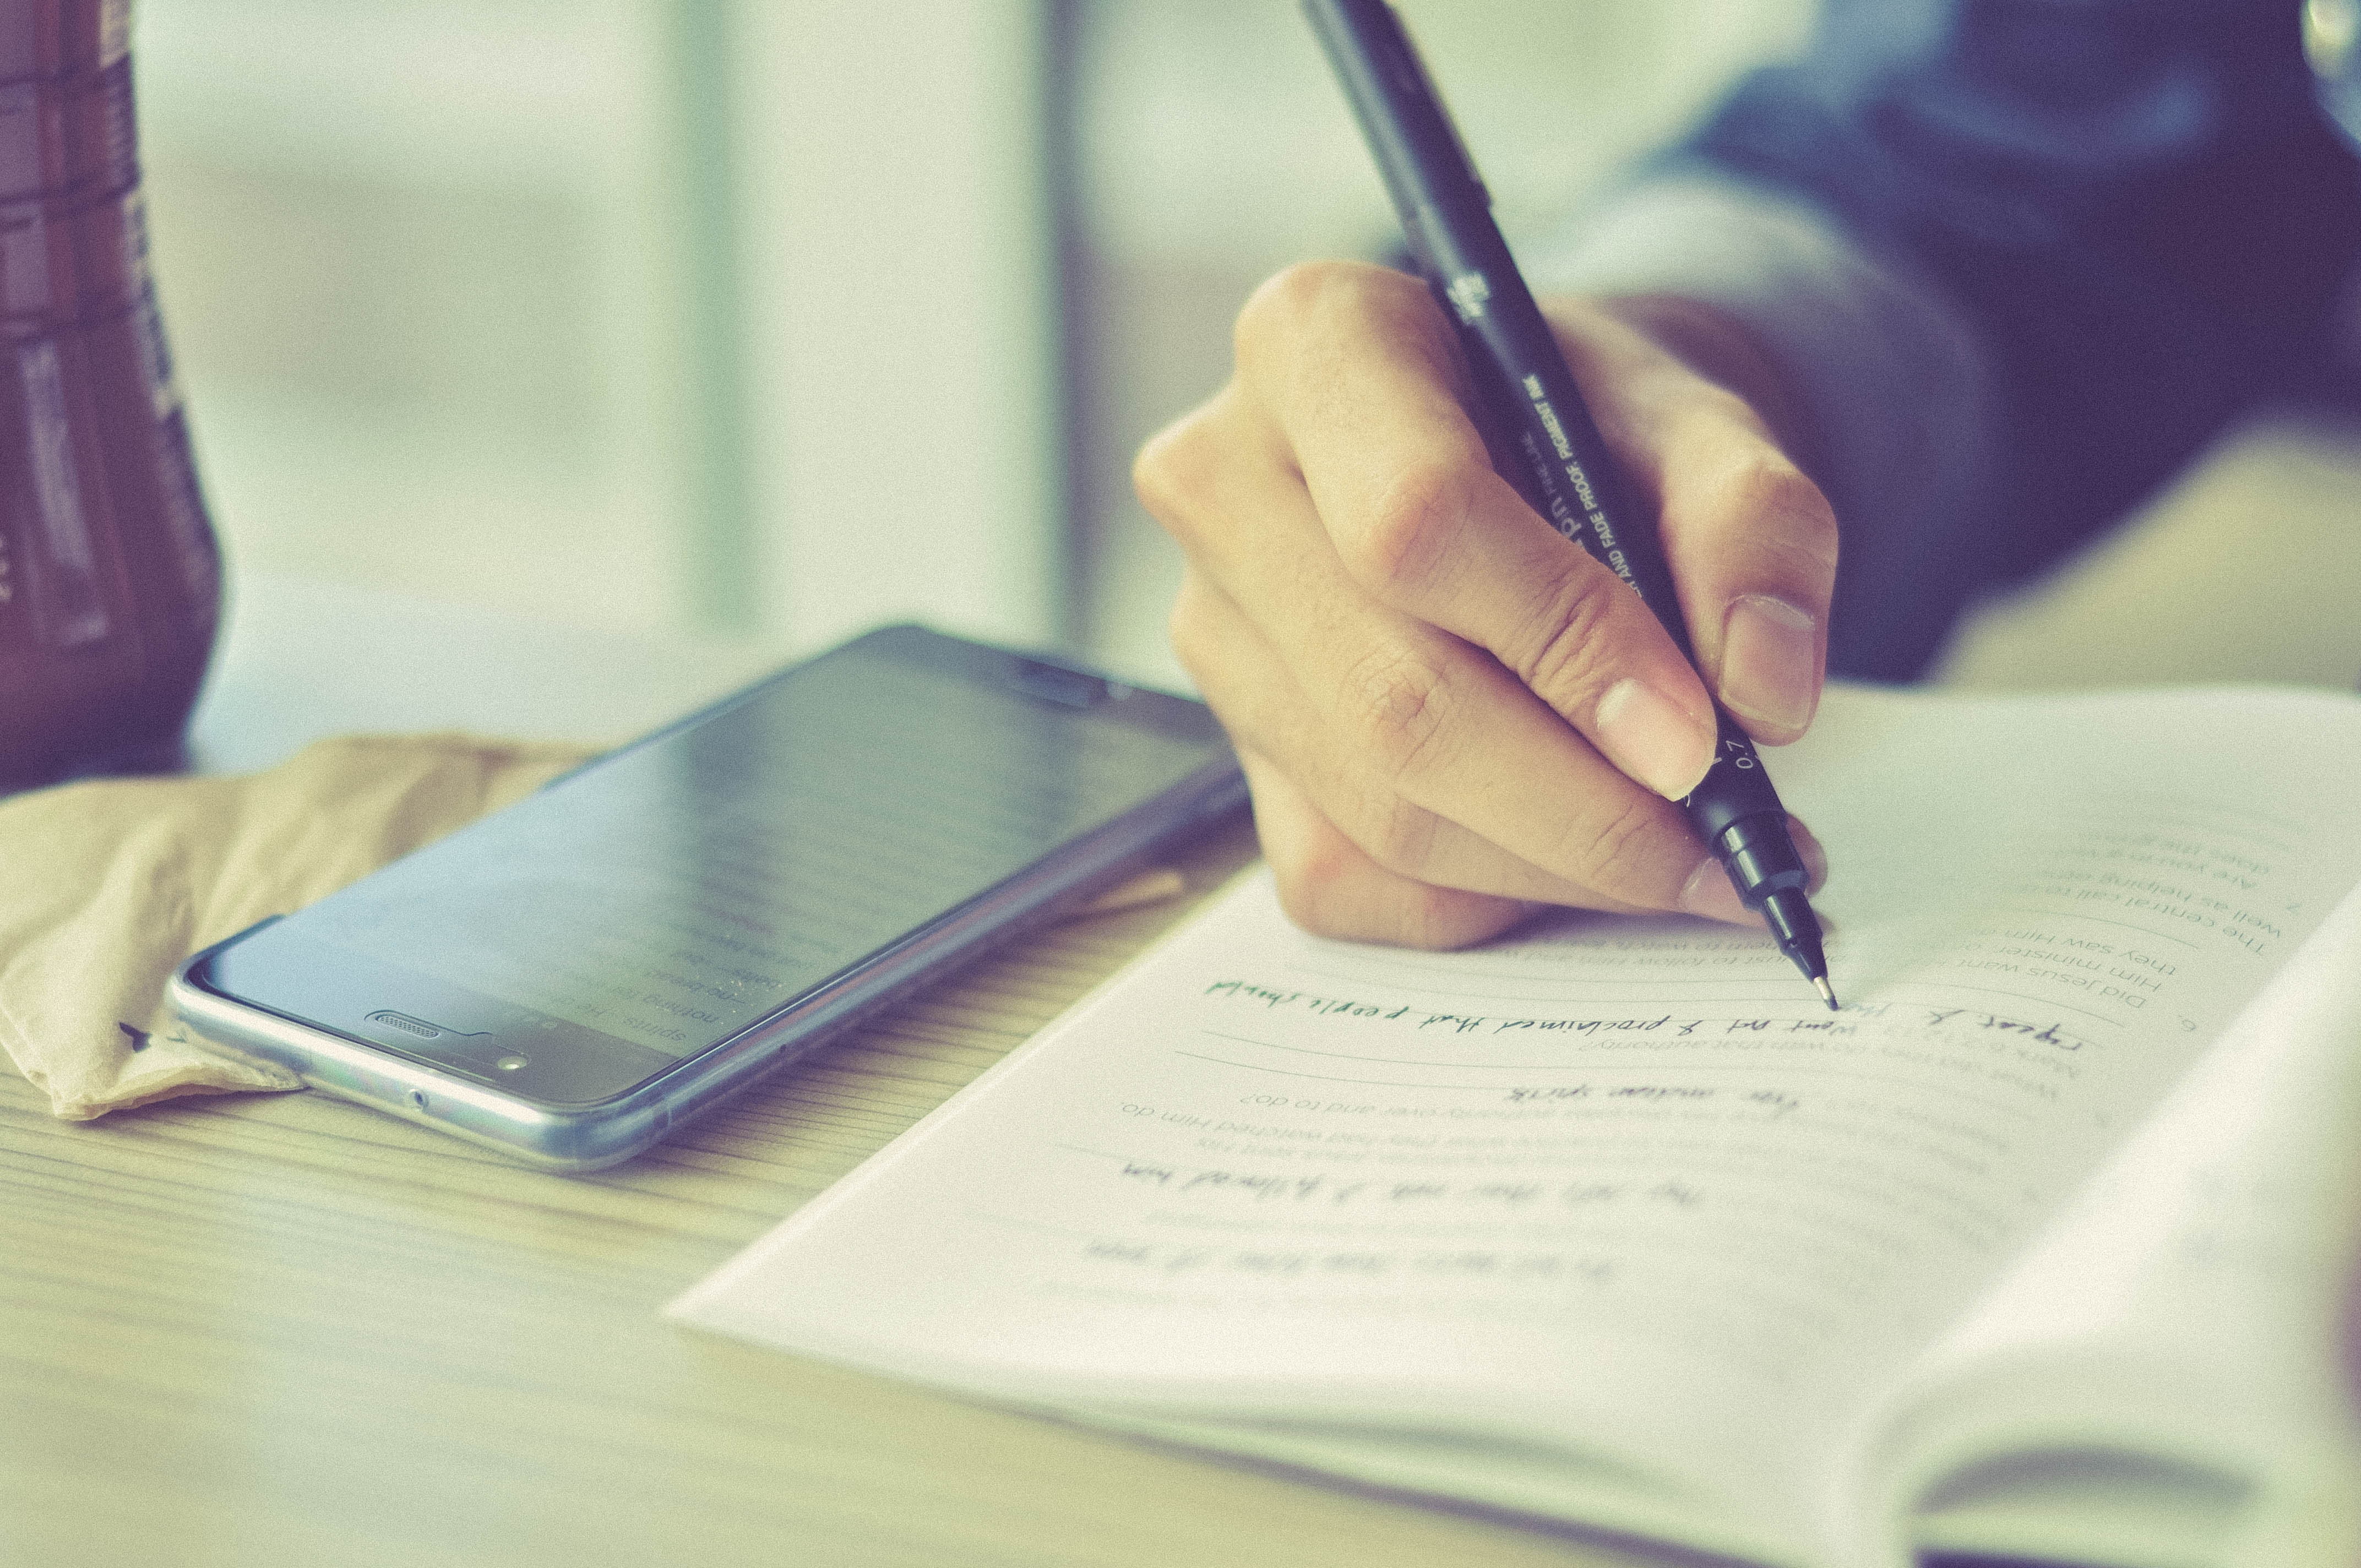 A close-up image of a person writing in a notebook, with a phone laying next to the notebook.